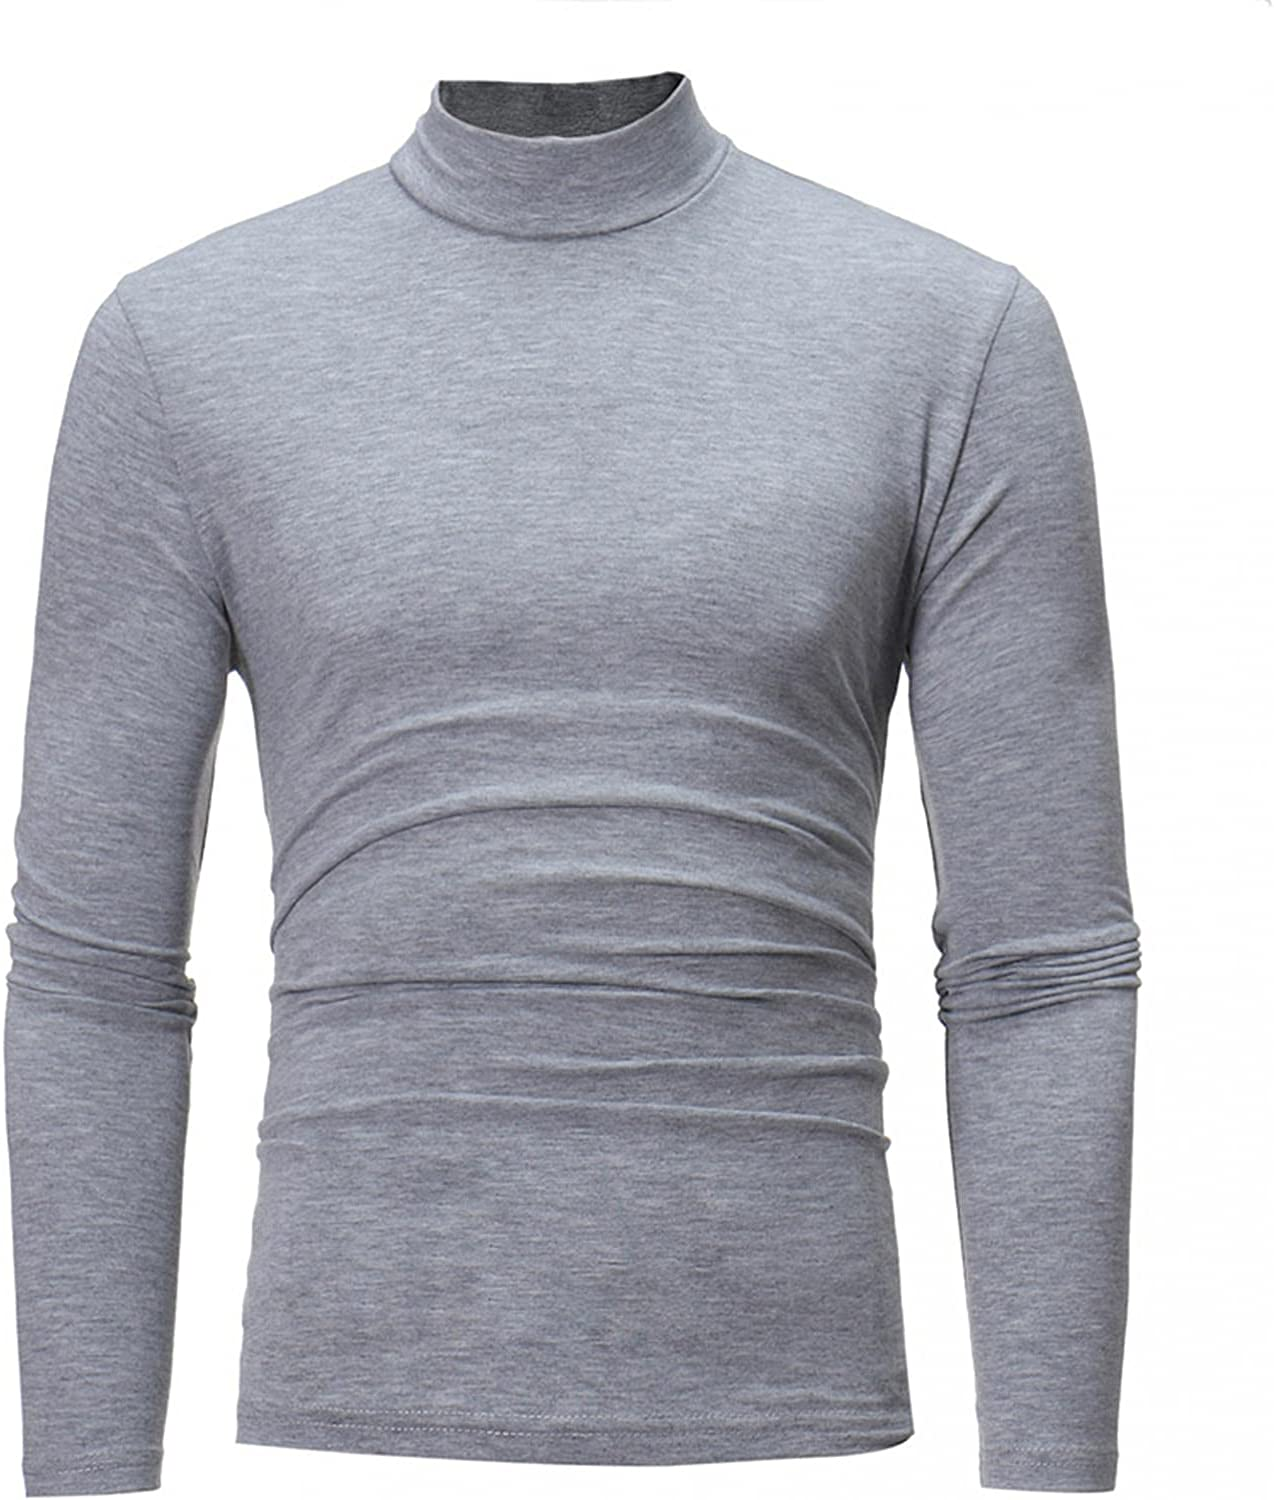 Men's Shirt Long Sleeve Mid-Collar Solid Color Stretch Slim Fit Bottoming Top to wear with Jacket Coat